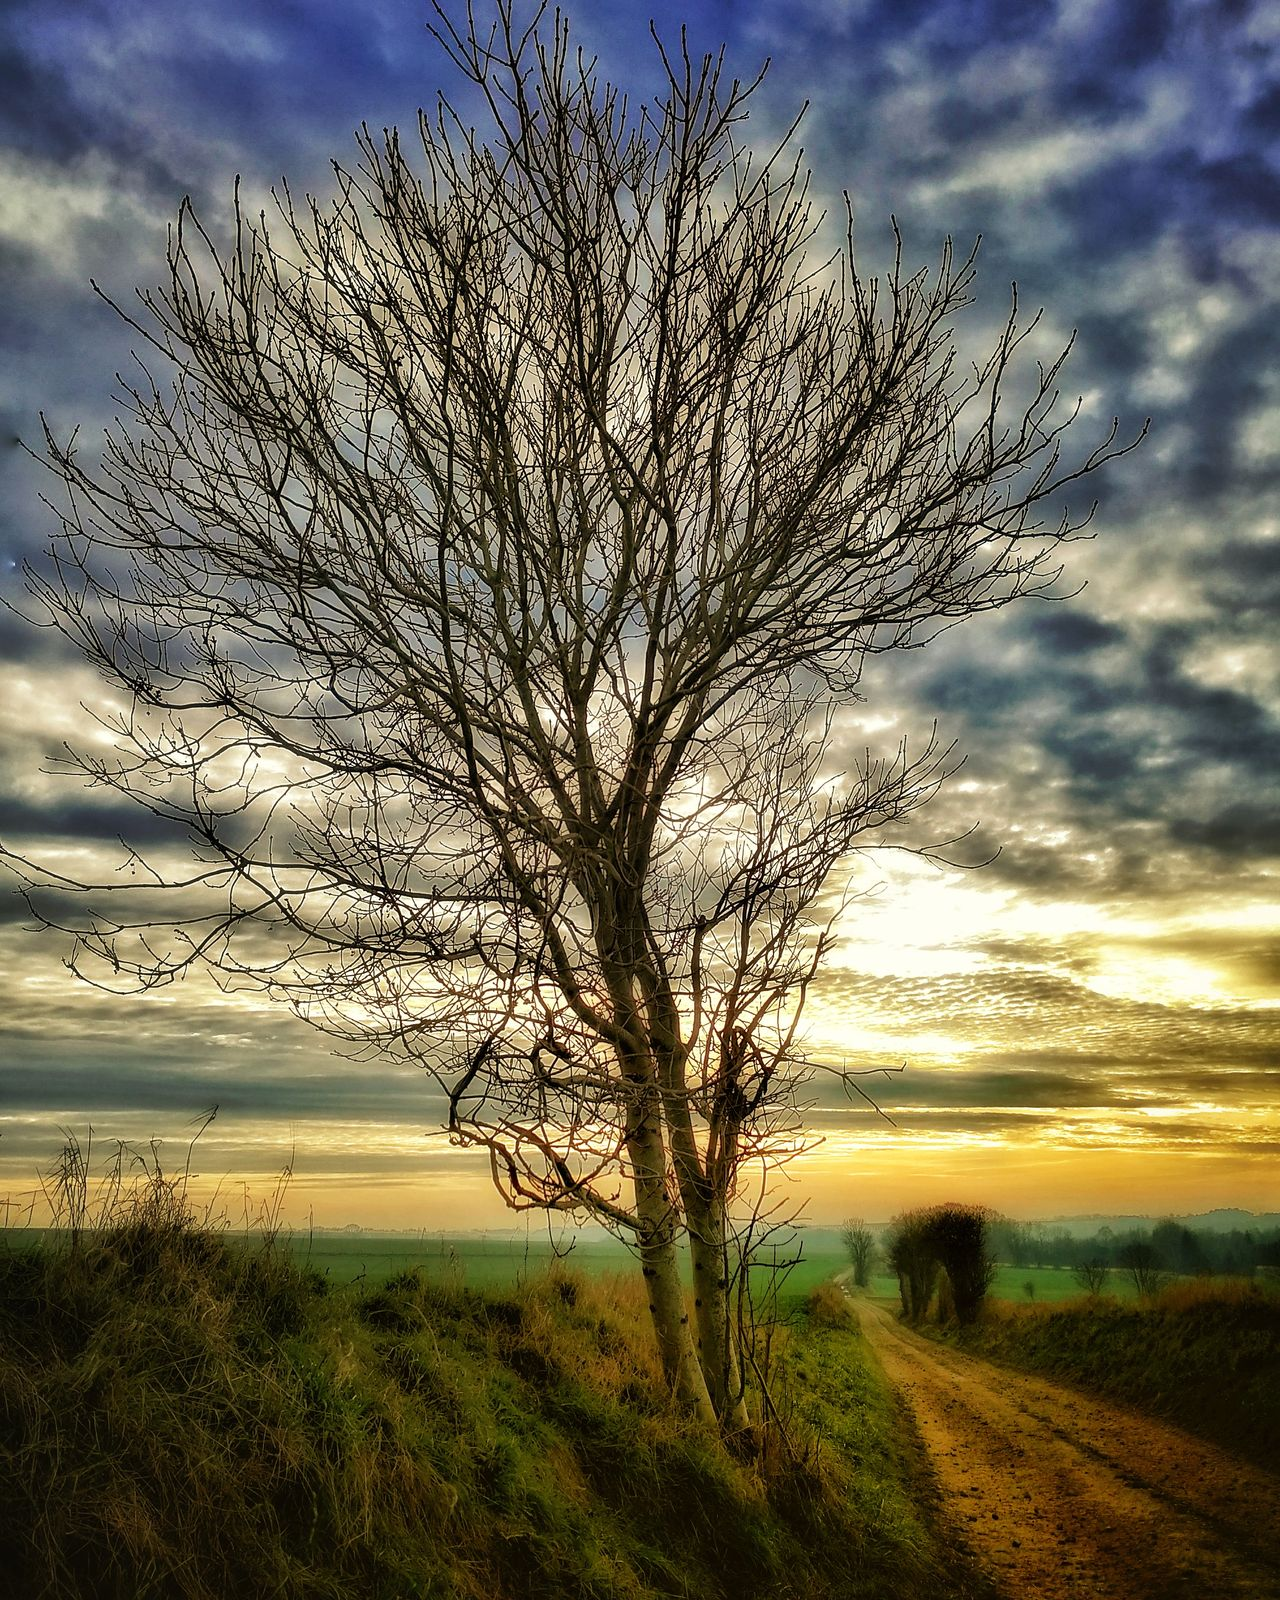 Paysage. Landscape Countryside Tree Serenity Country Life Outdoors Landscape_Collection Road Chemin Nature Tranquility No People